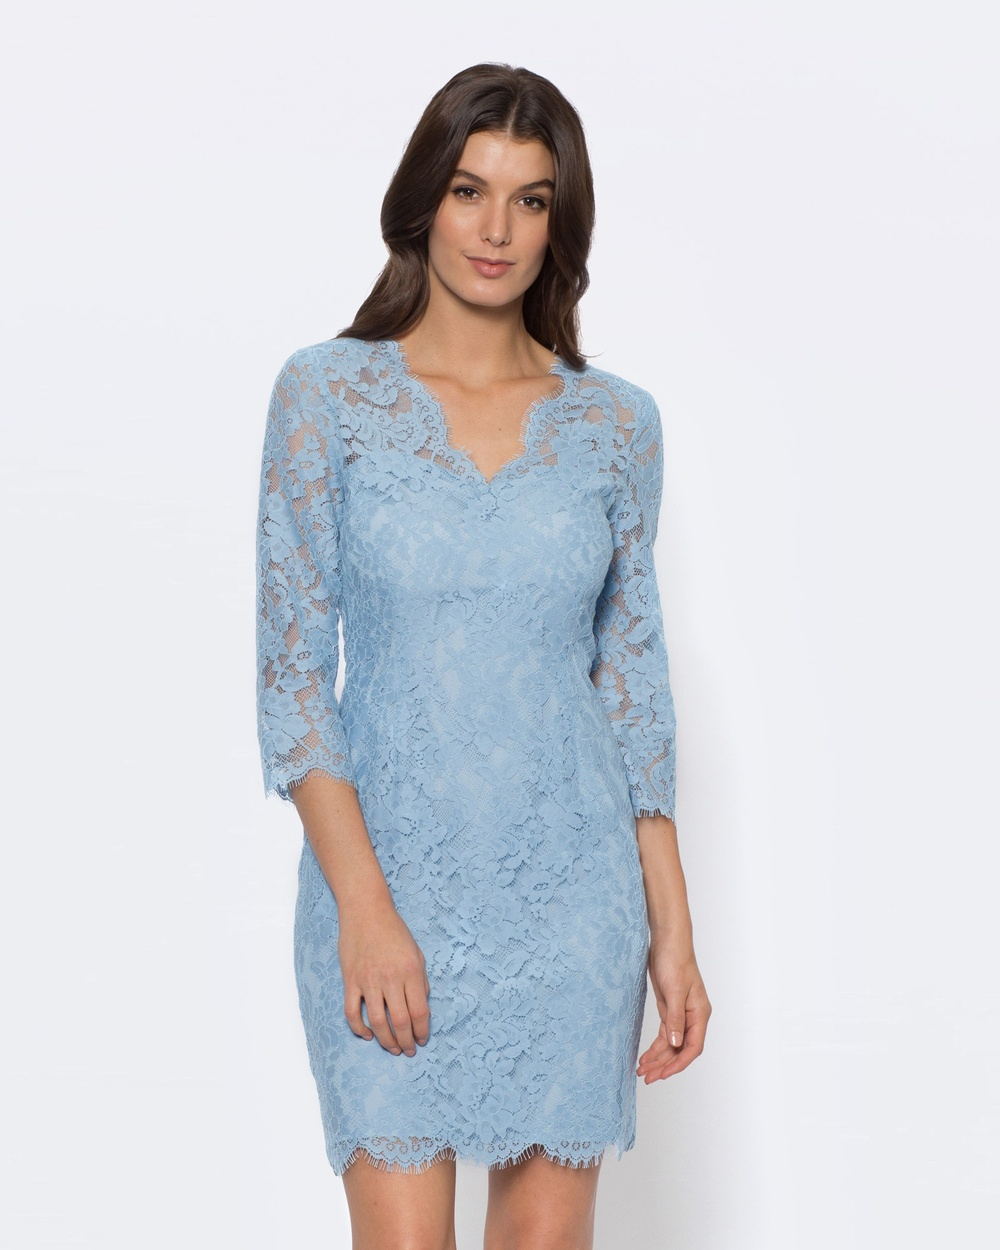 Alannah Hill The Little Lace Dress Dresses blue The Little Lace Dress